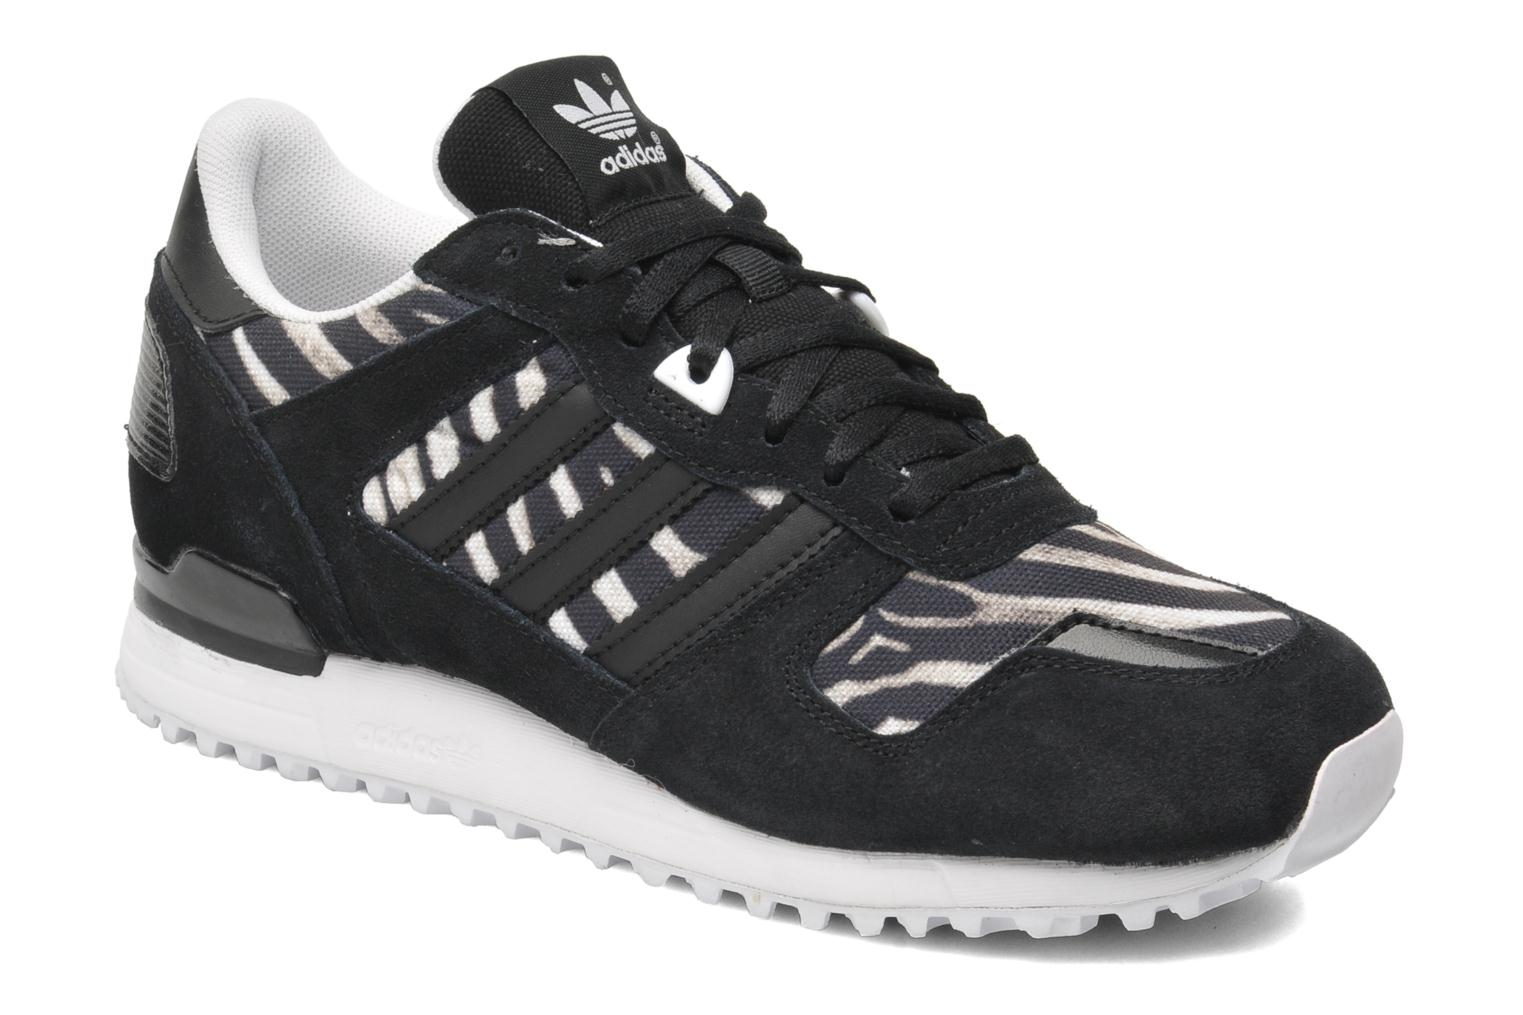 pretty nice d5978 2f64d ... coupon code for trainers adidas originals zx 700 w black detailed view  pair view 4b07e 46826